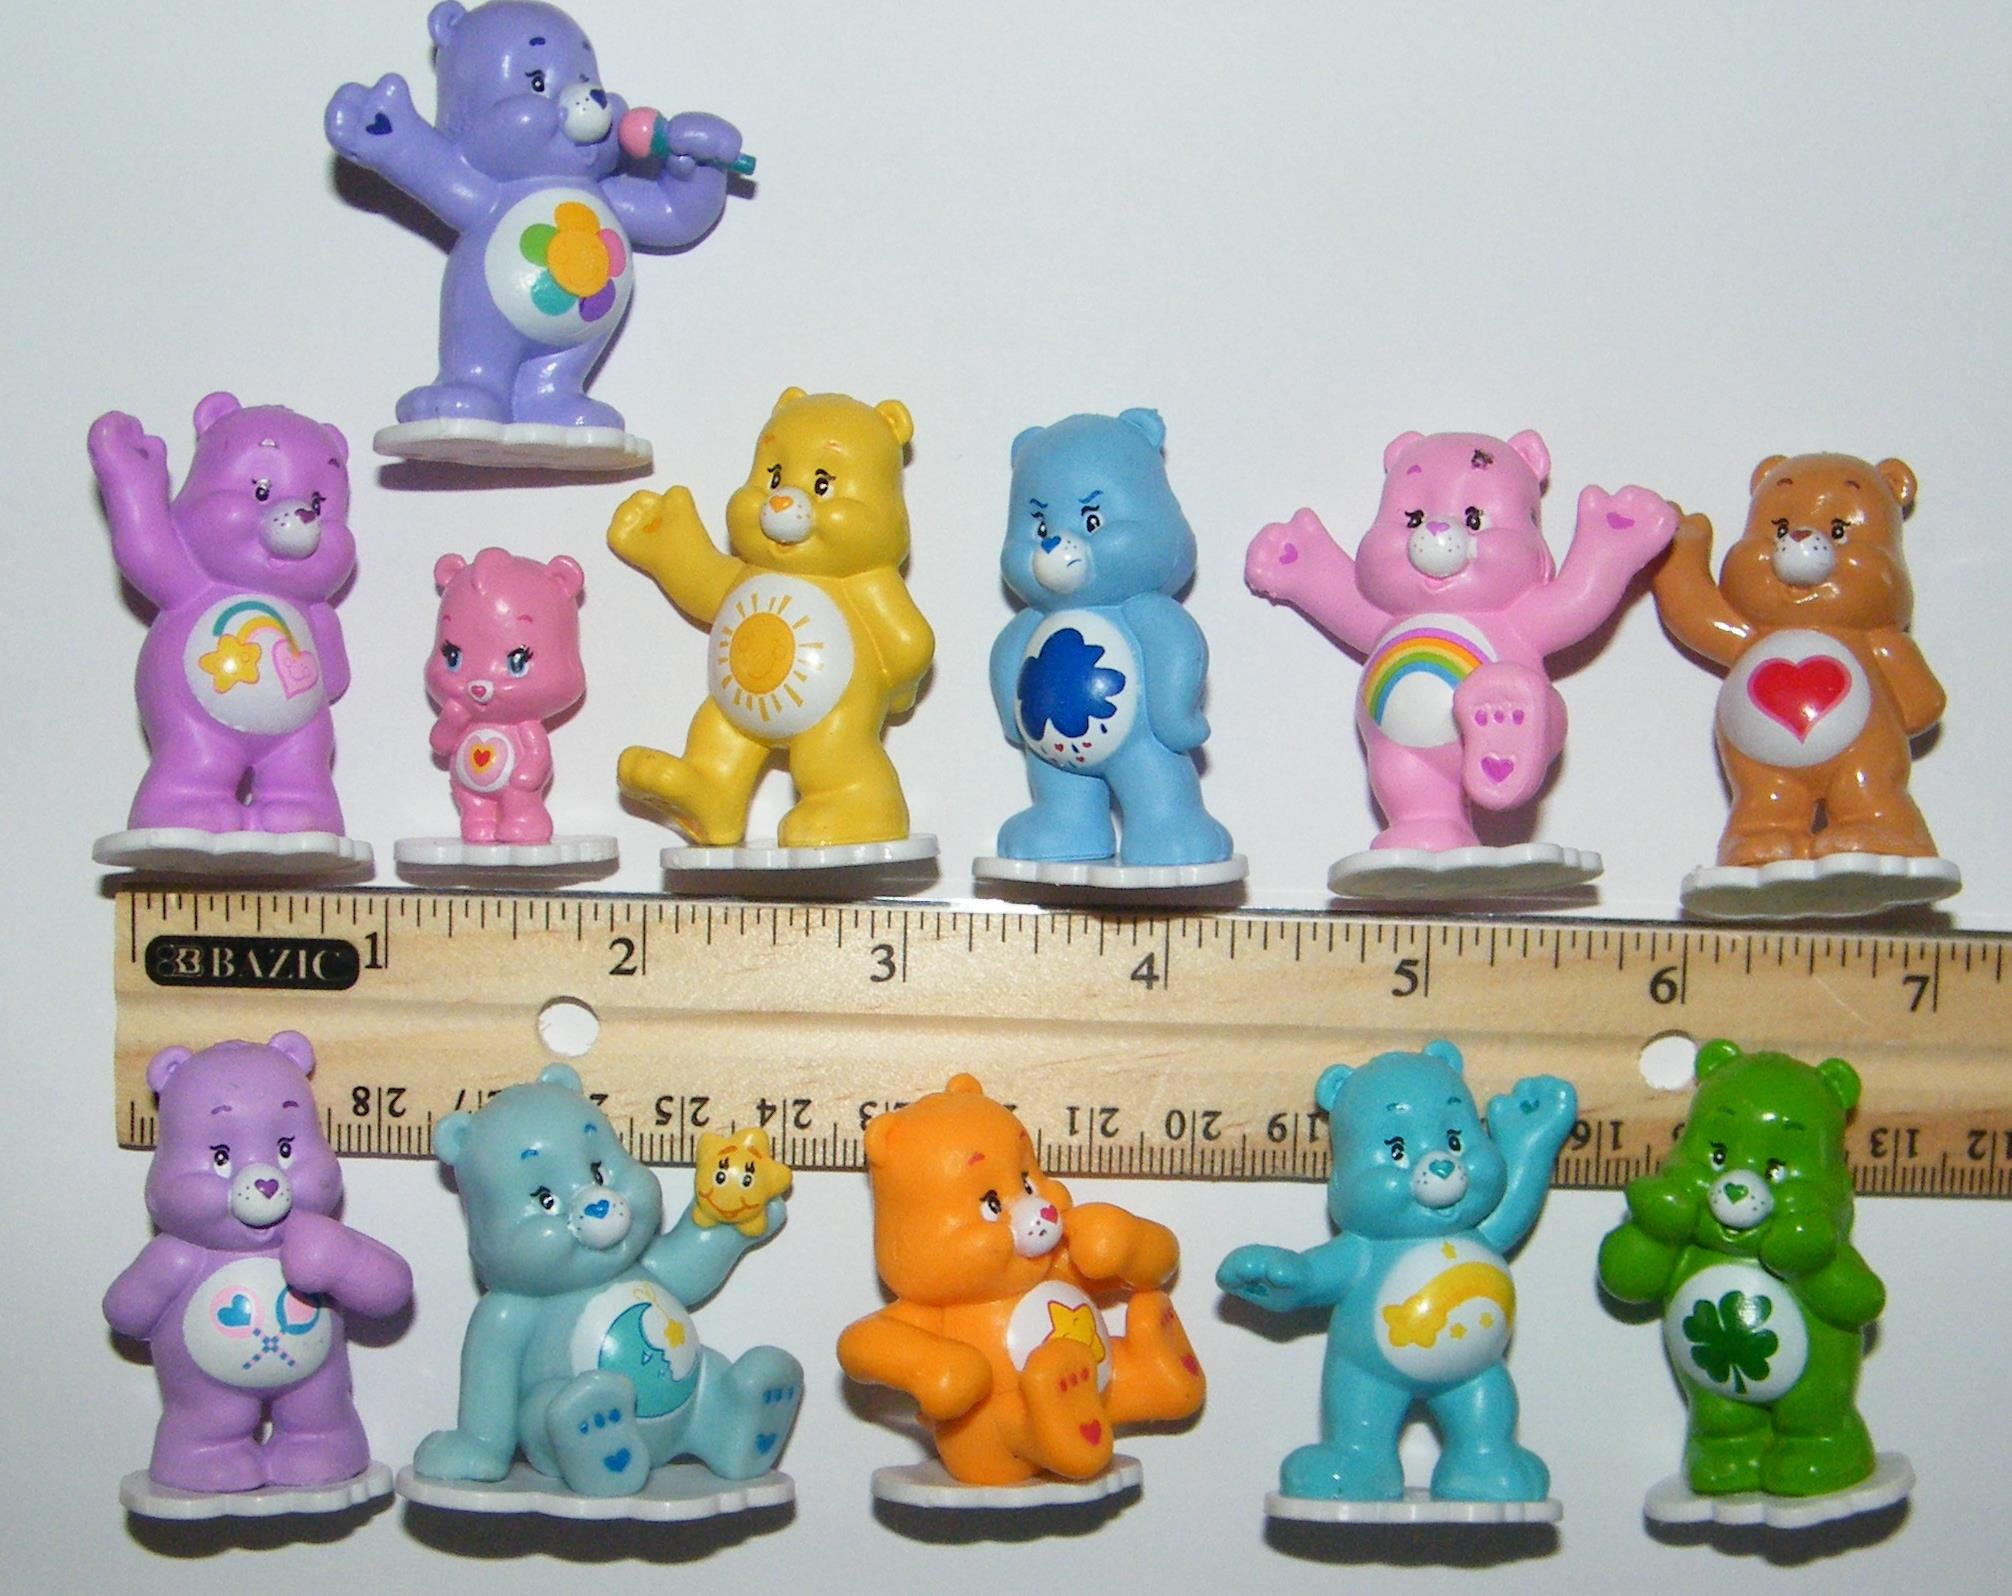 Care Bears Cupcake Topper Birthday Party Decorations Set of 12 Figures with Share Bear, Wonderheart Bear, Grumpy Bear, Wish Bear and Many More! by Care Bears (Image #4)